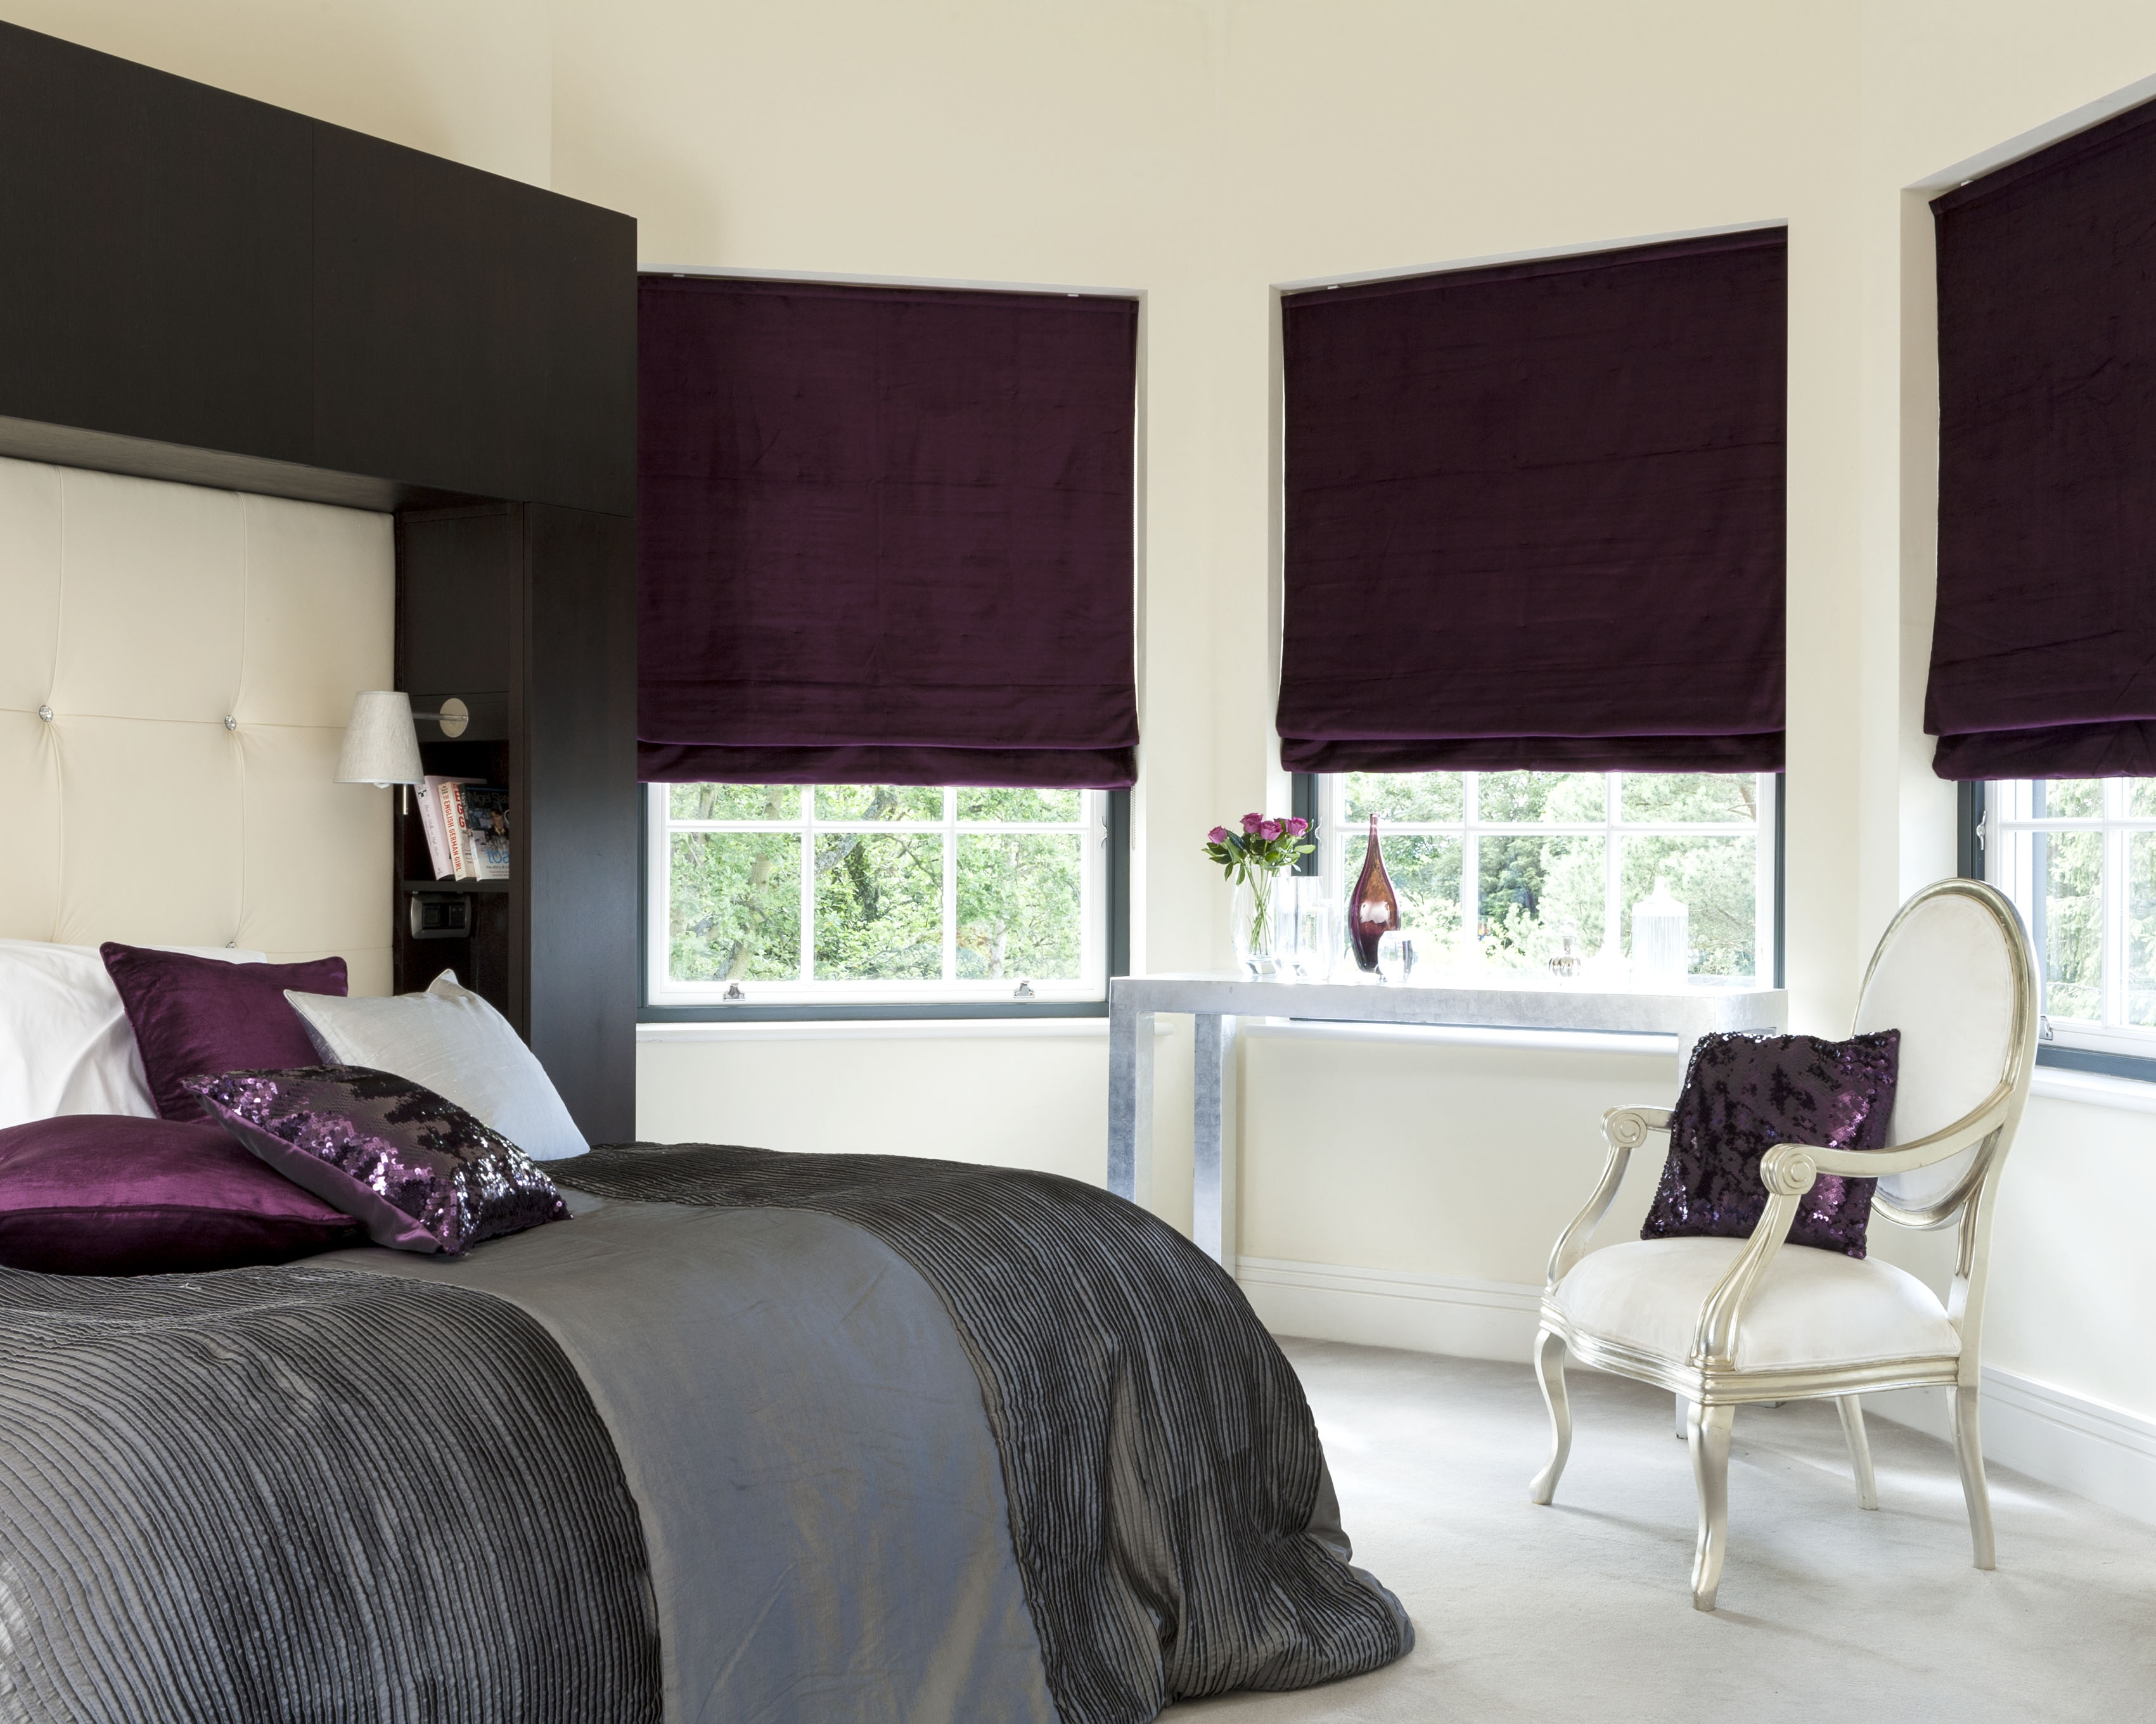 Cheapest Blinds Uk Ltd Black Roman Blinds Intended For Roman Blinds Black (Image 7 of 15)